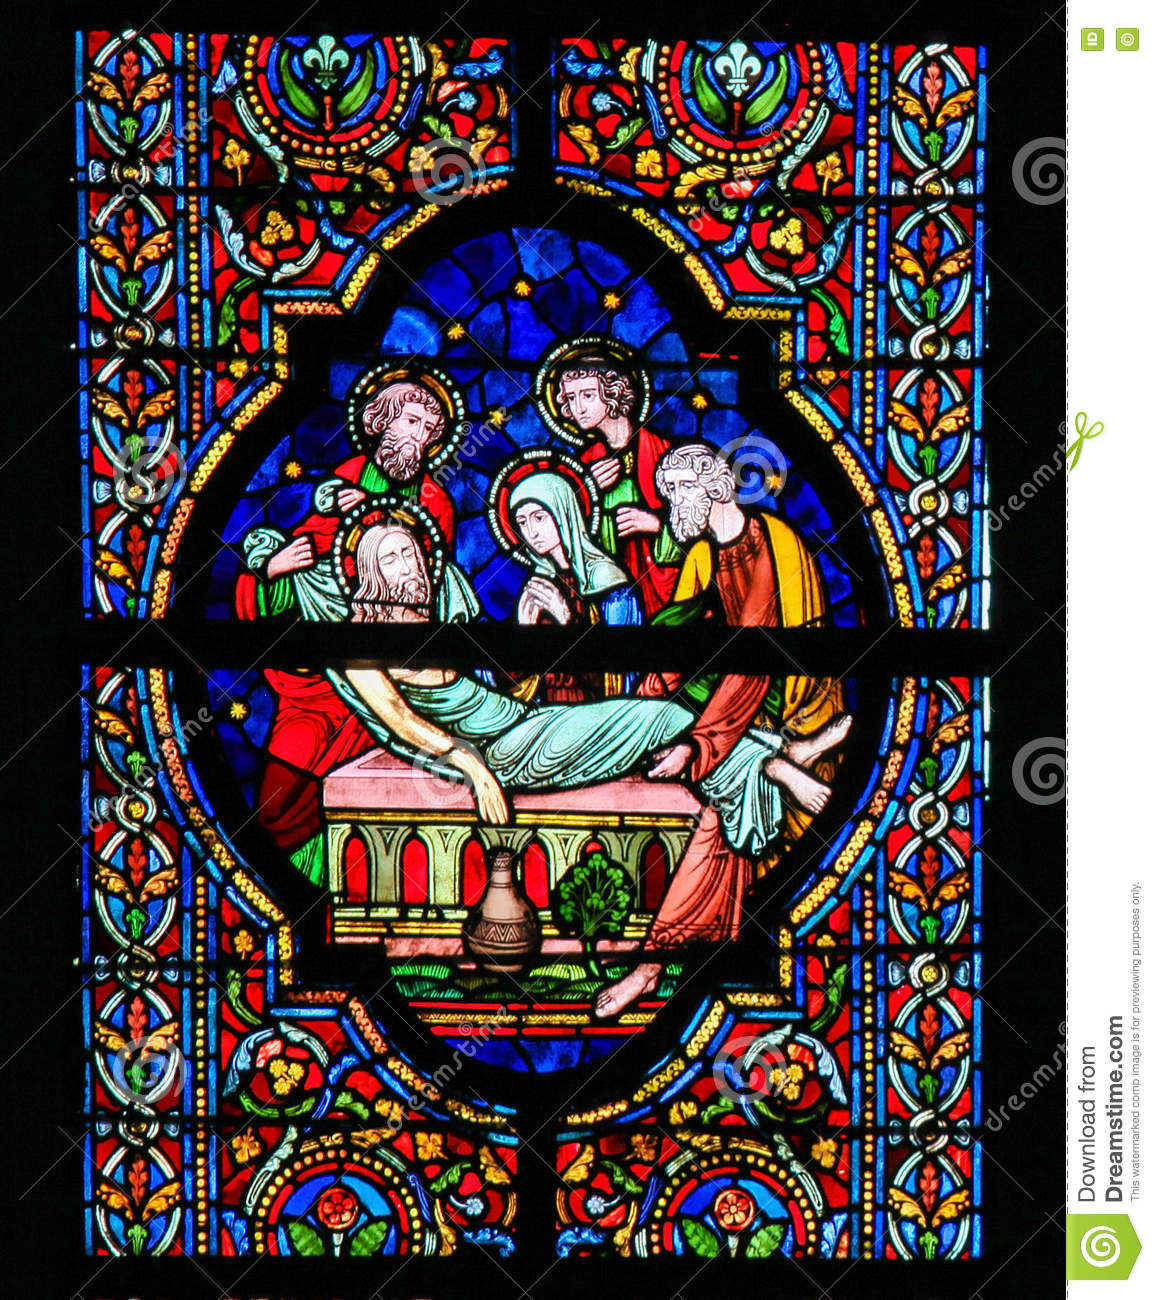 Stained Glass - Burial Of Jesus Stock Photo - Image: 68901502